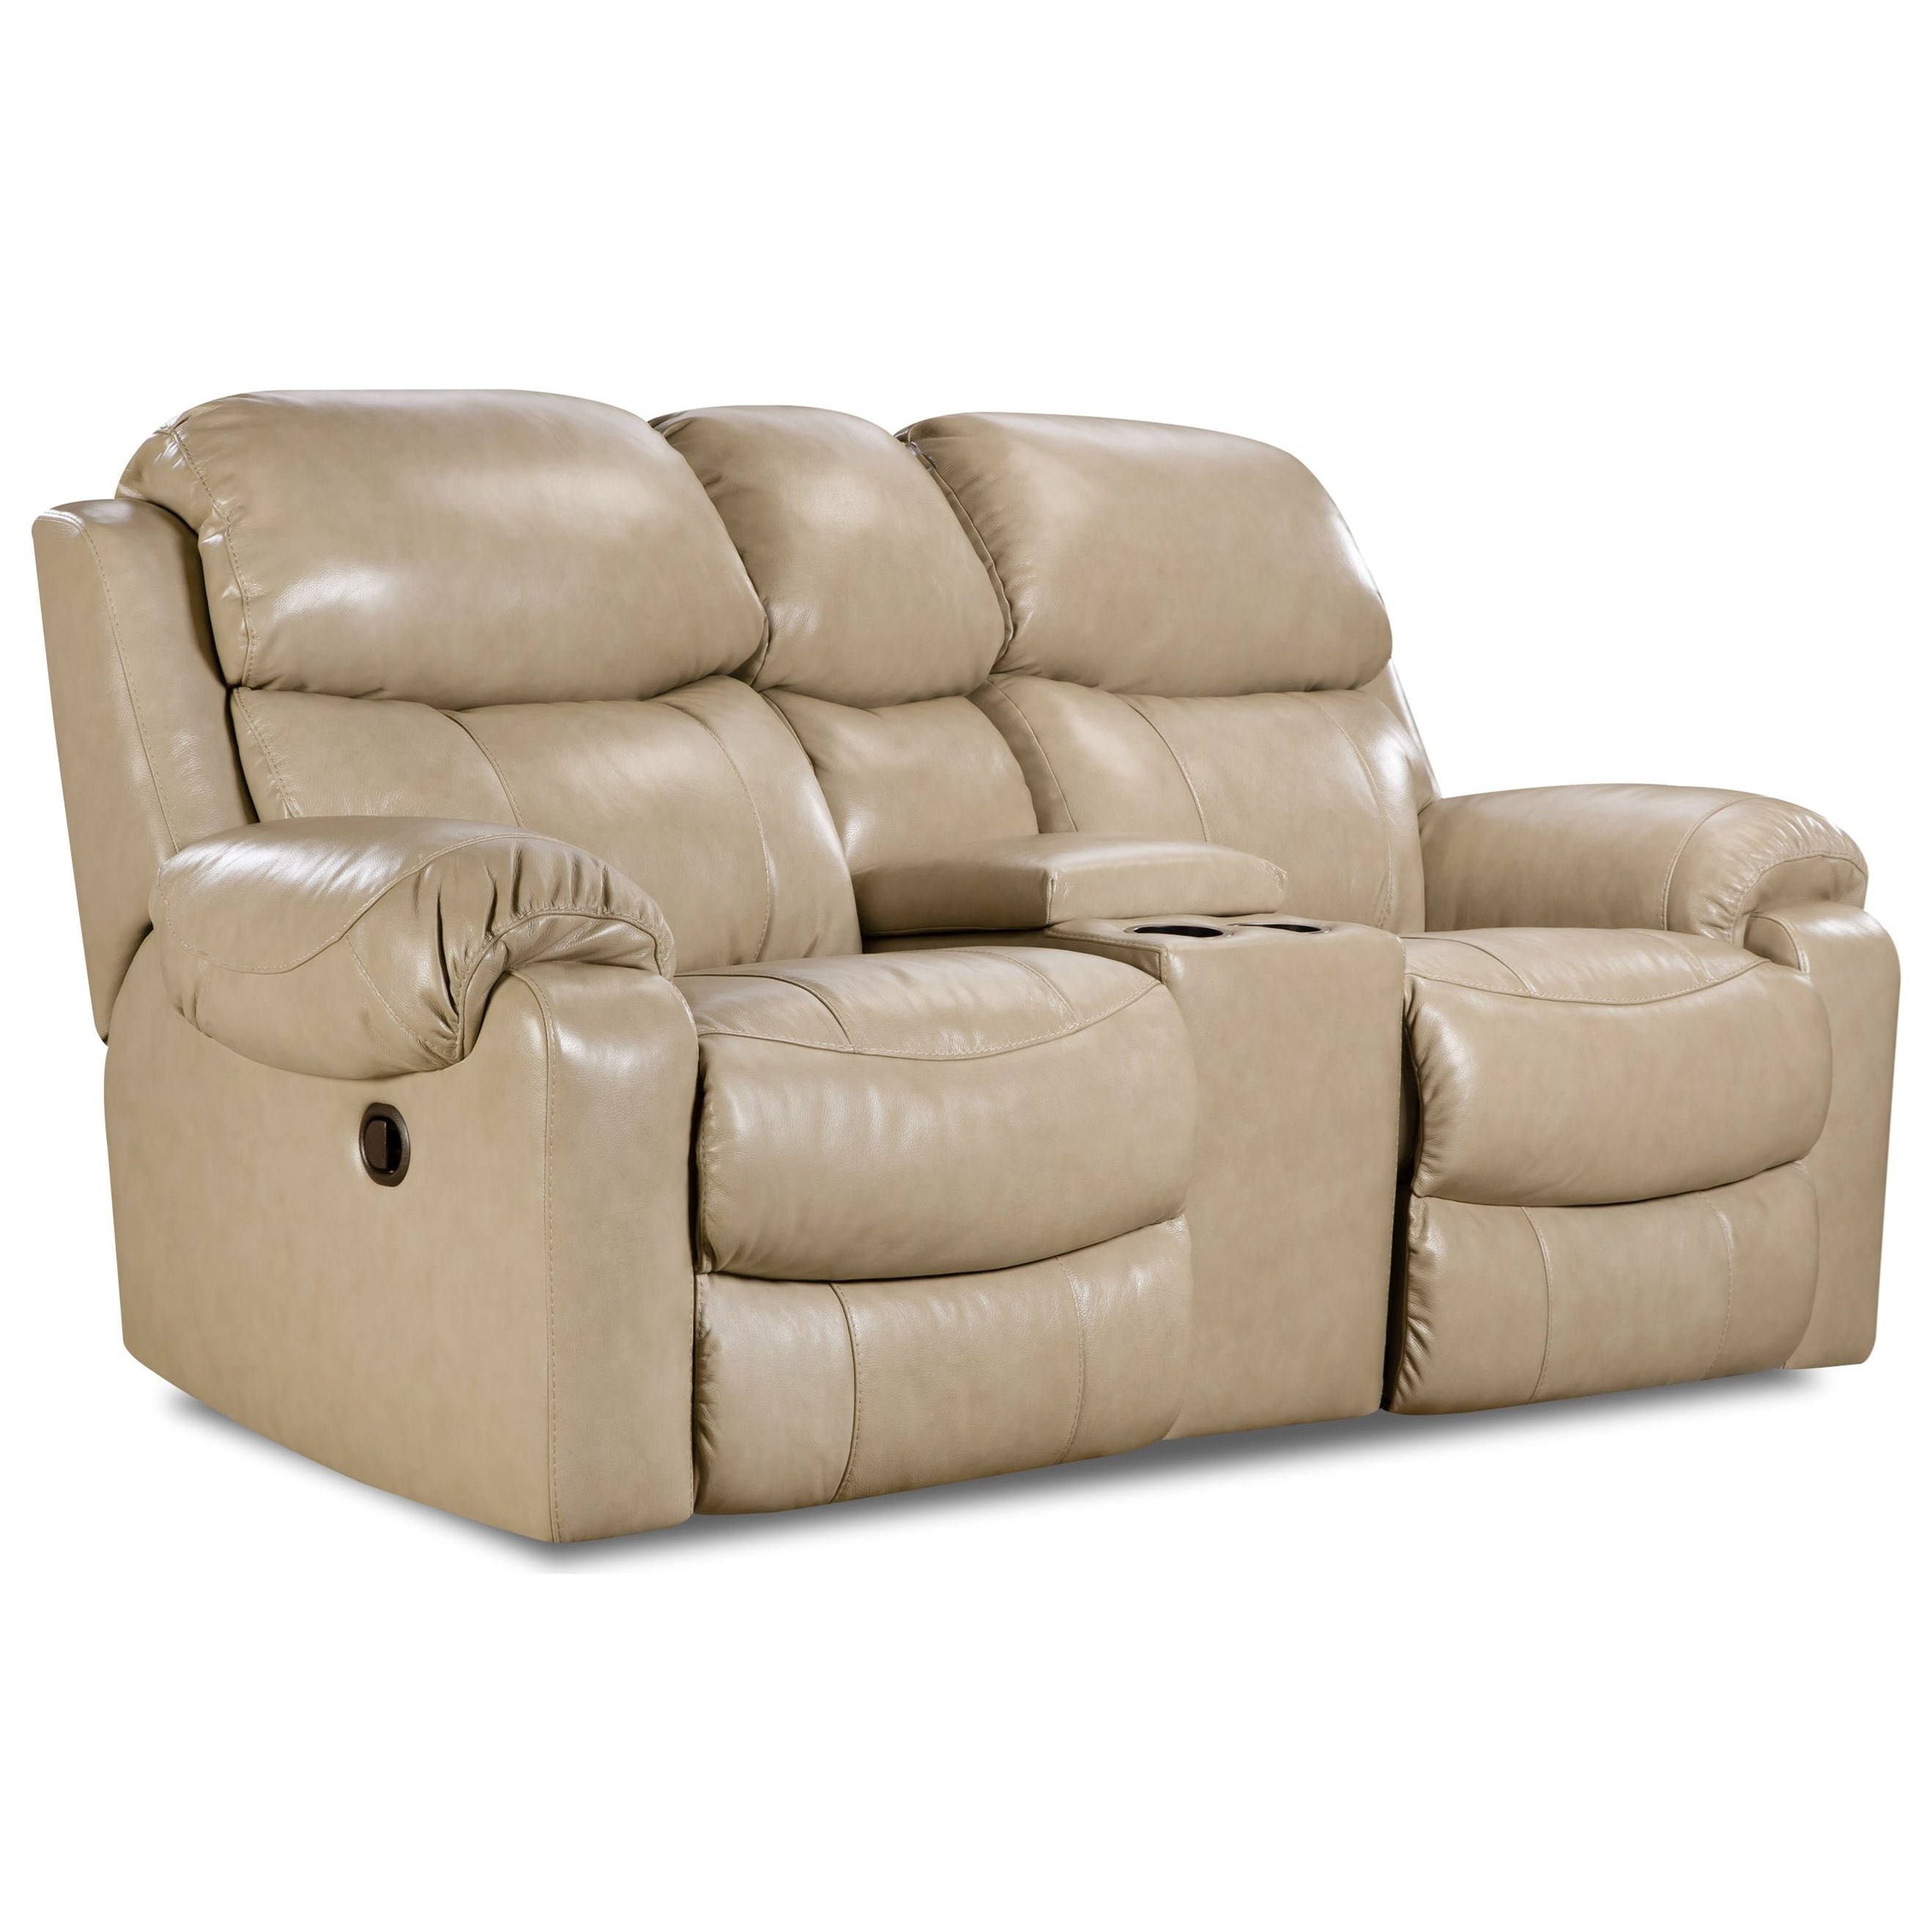 HomeStretch 135 Collection Power Reclining Loveseat - Item Number: 135-29-10